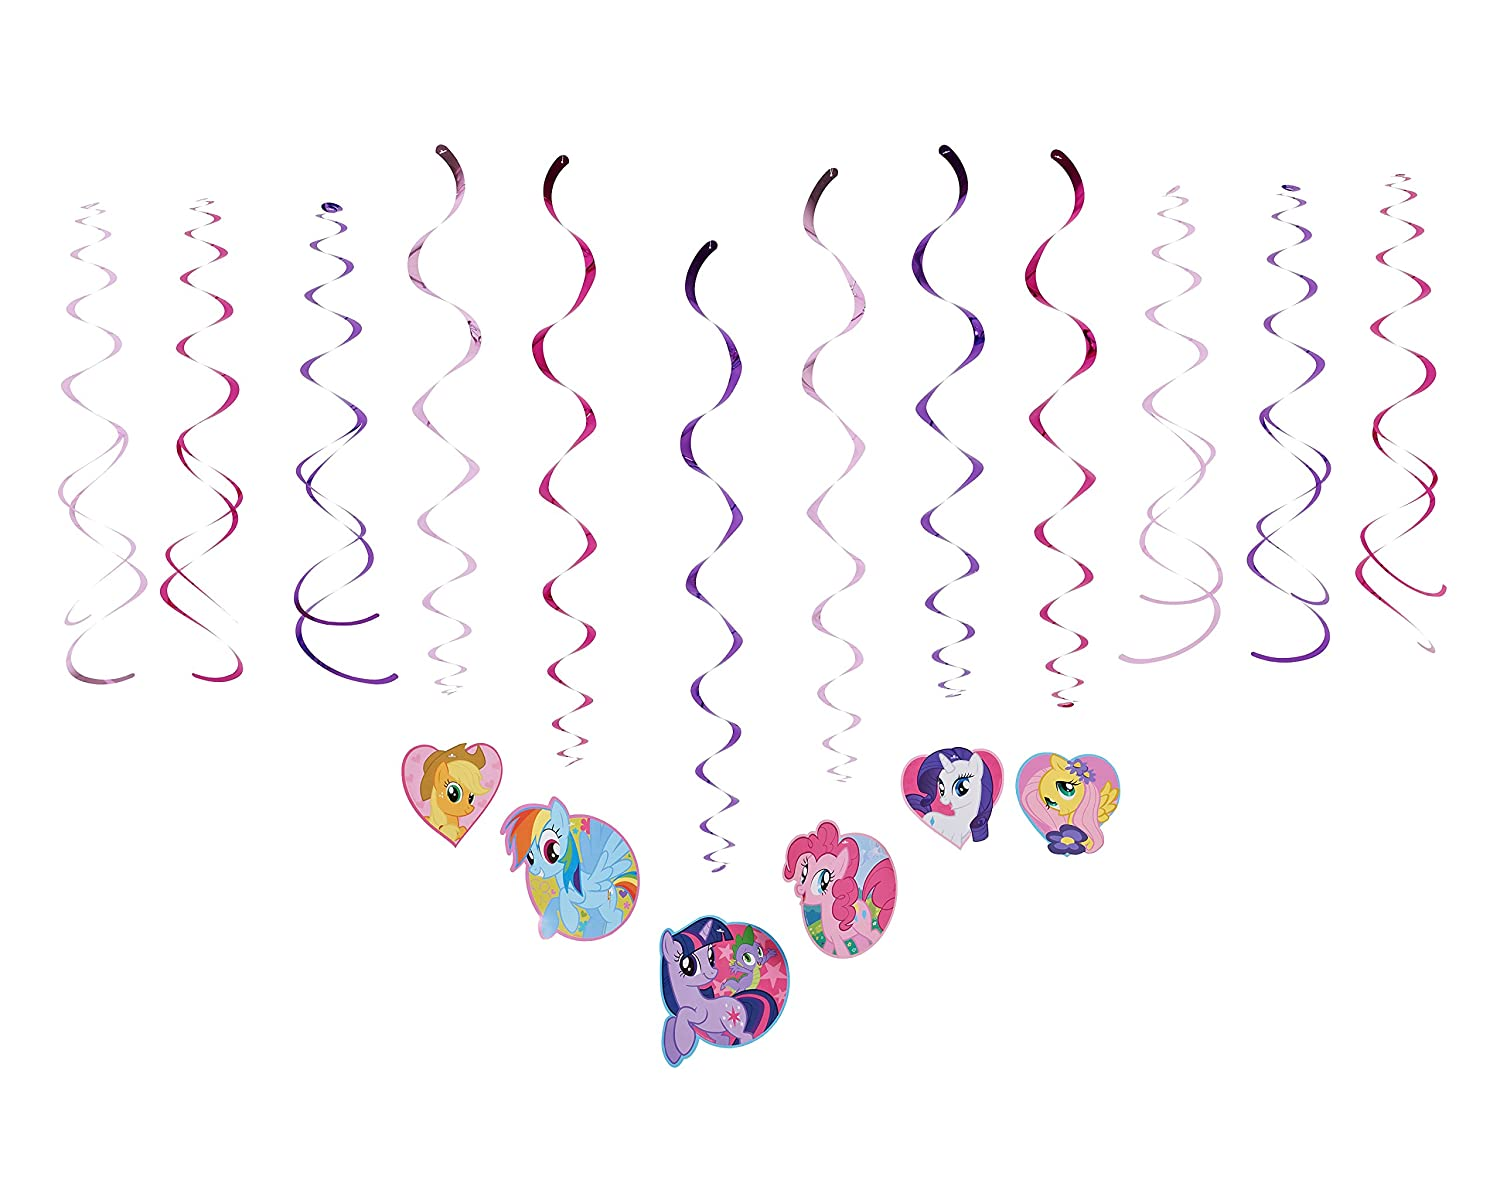 Amazon american greetings amscan ami 675513 my little pony amazon american greetings amscan ami 675513 my little pony swirl decorations ami 675513 1 multicolored kitchen dining kristyandbryce Choice Image